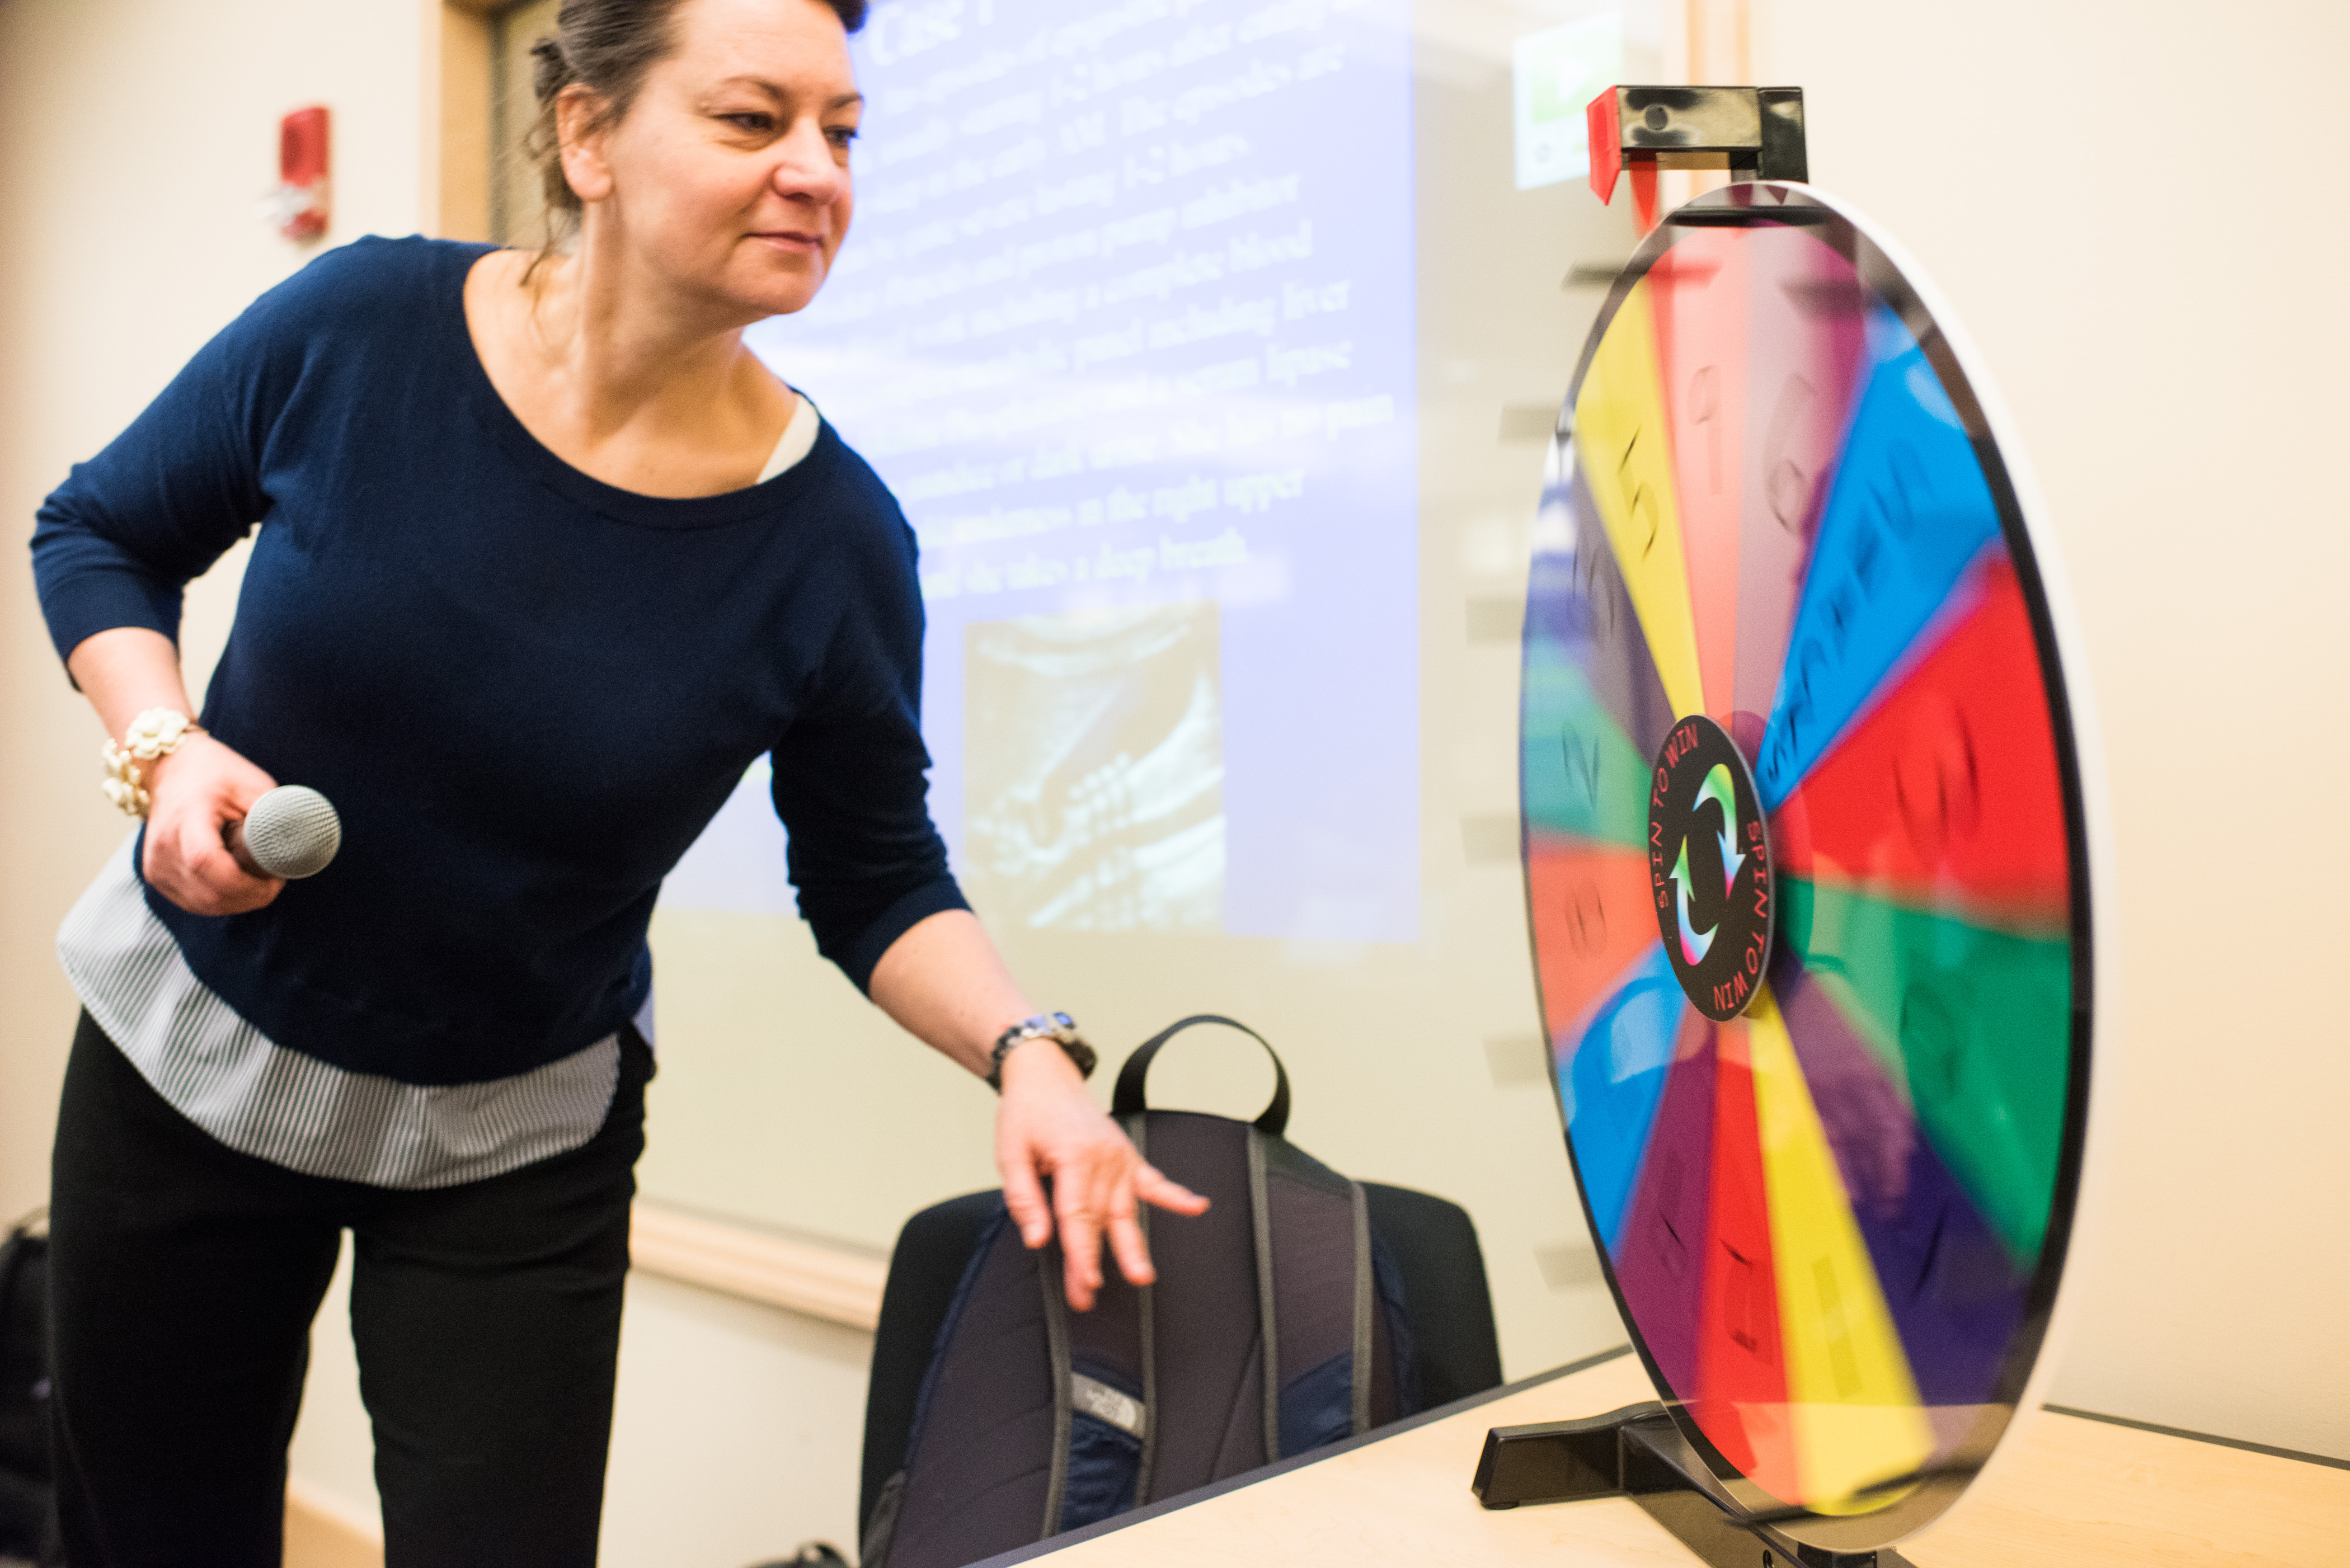 Student spinning wheel in active learning classroom